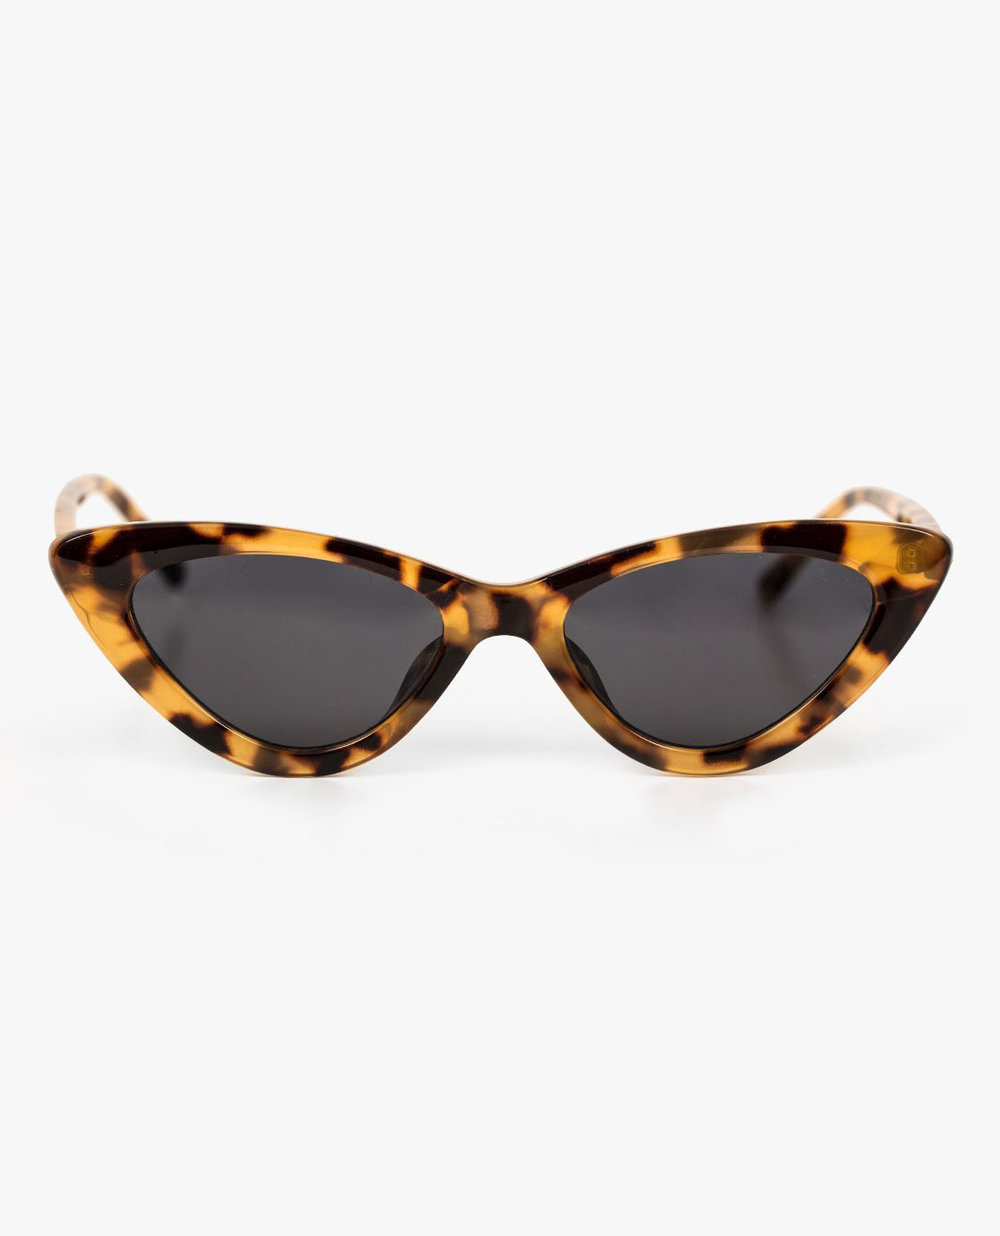 Pixie Market Tortoise Cat Eye Sunglasses     $28